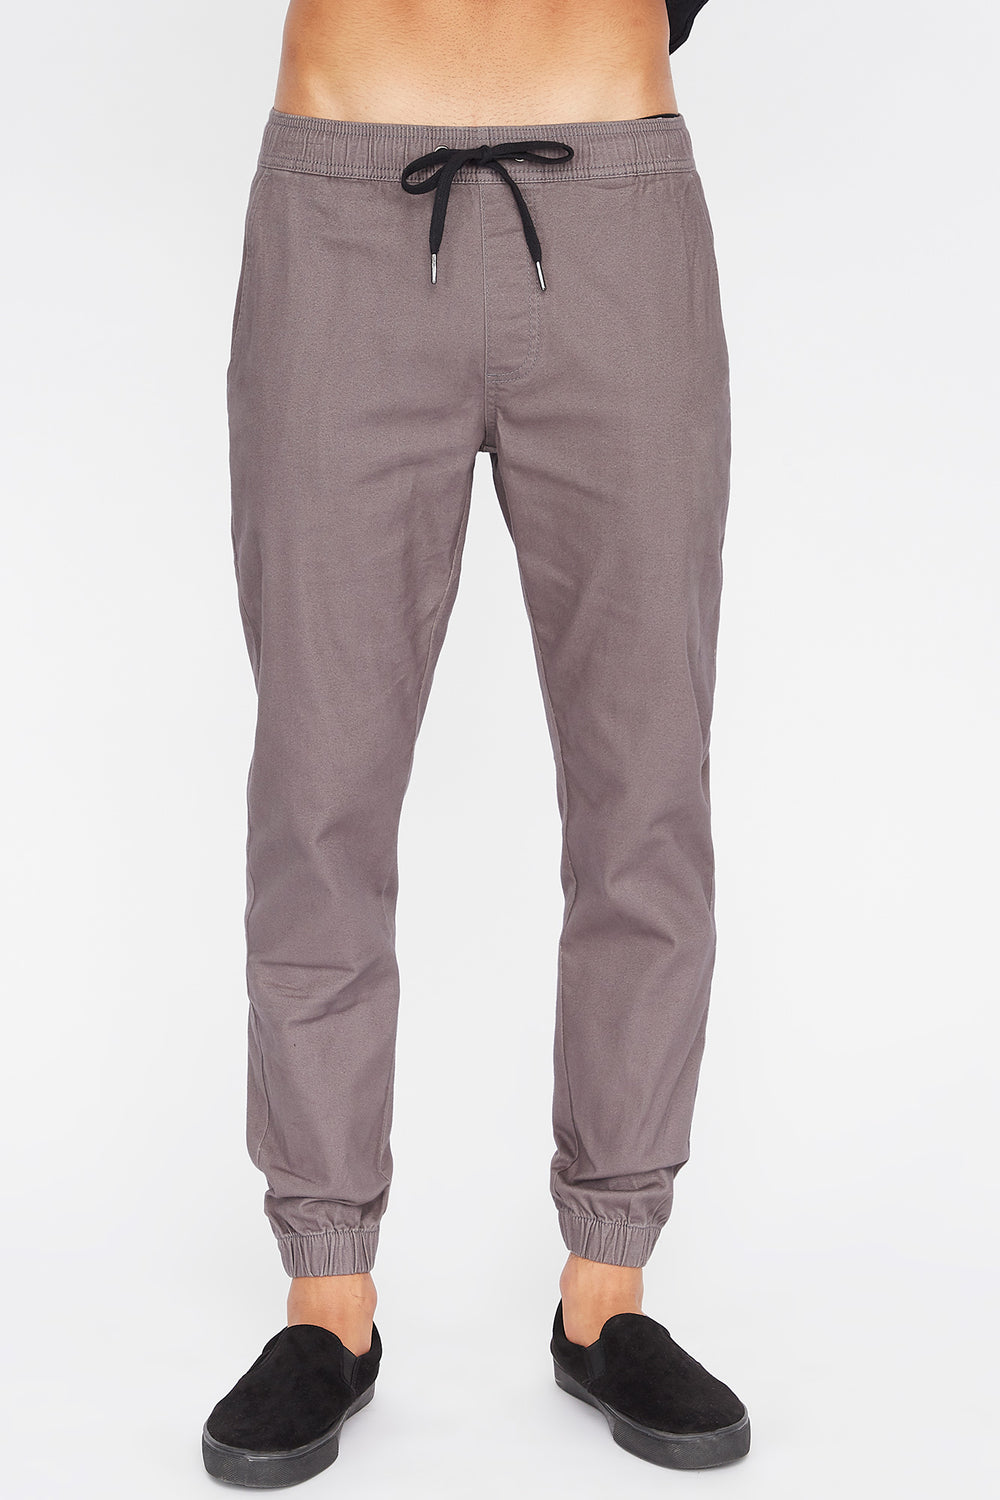 West49 Mens Jogger Heather Grey